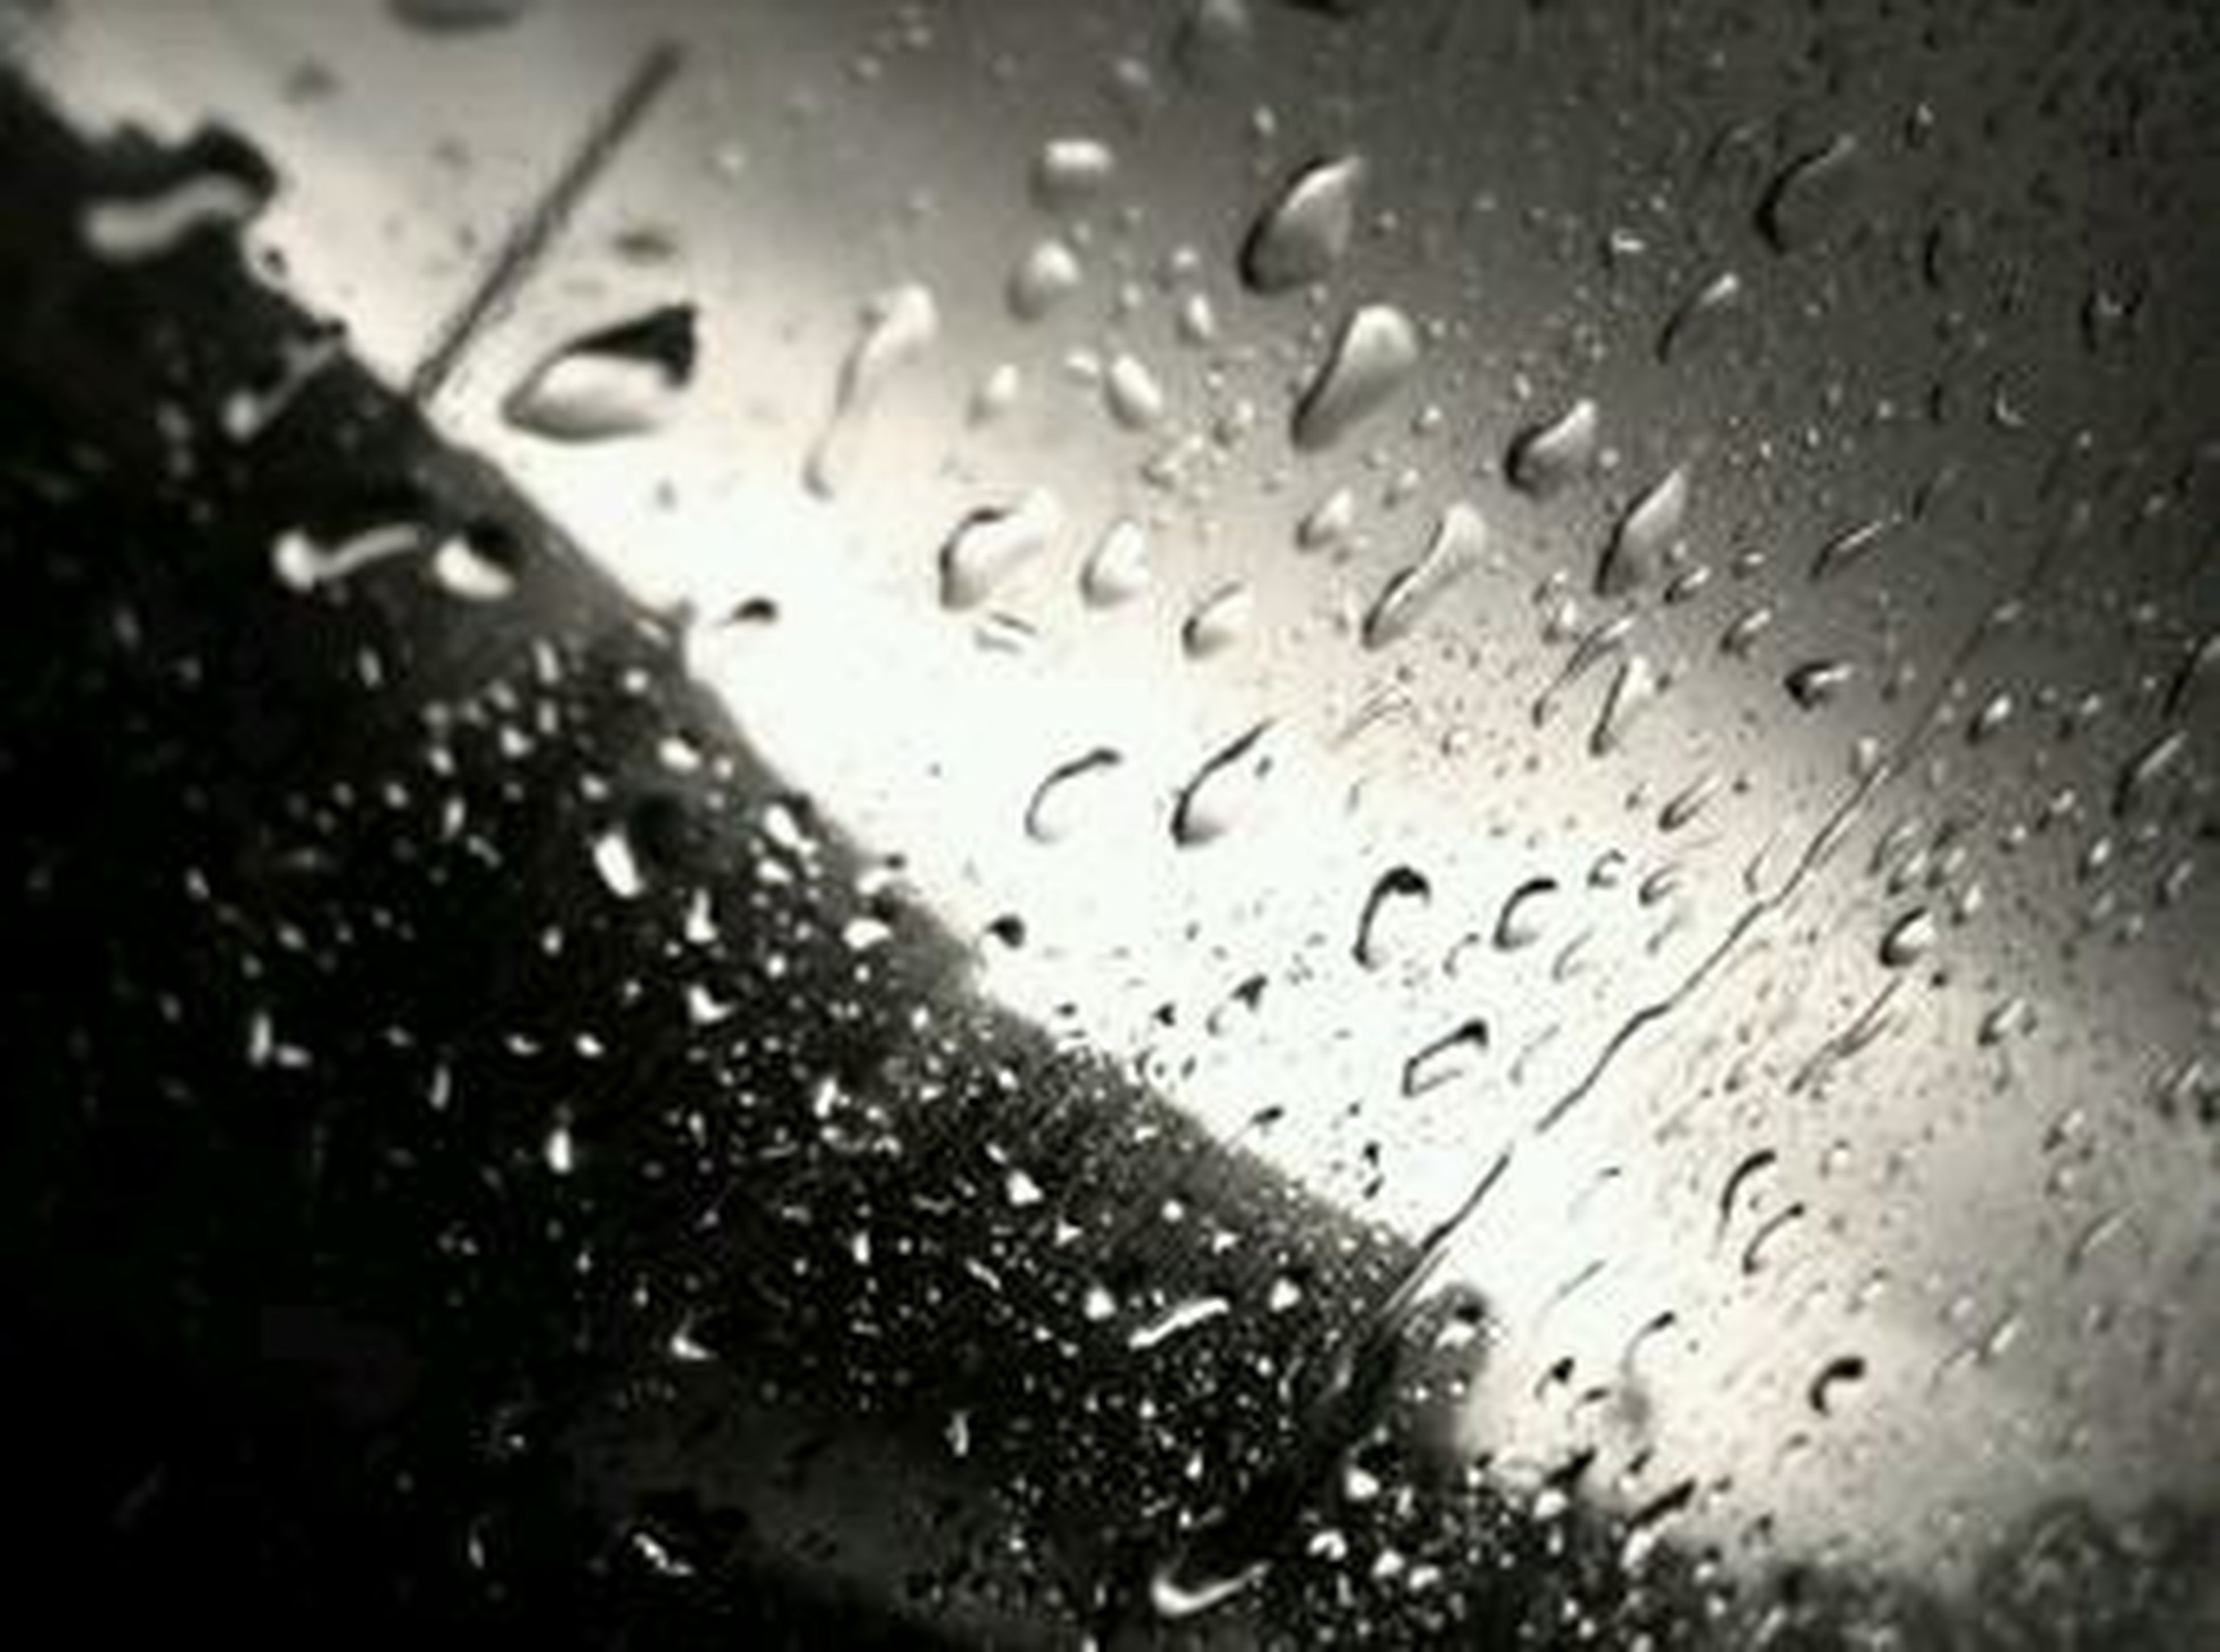 drop, wet, rain, water, window, transparent, glass - material, raindrop, indoors, weather, season, glass, close-up, focus on foreground, full frame, backgrounds, droplet, transportation, car, water drop